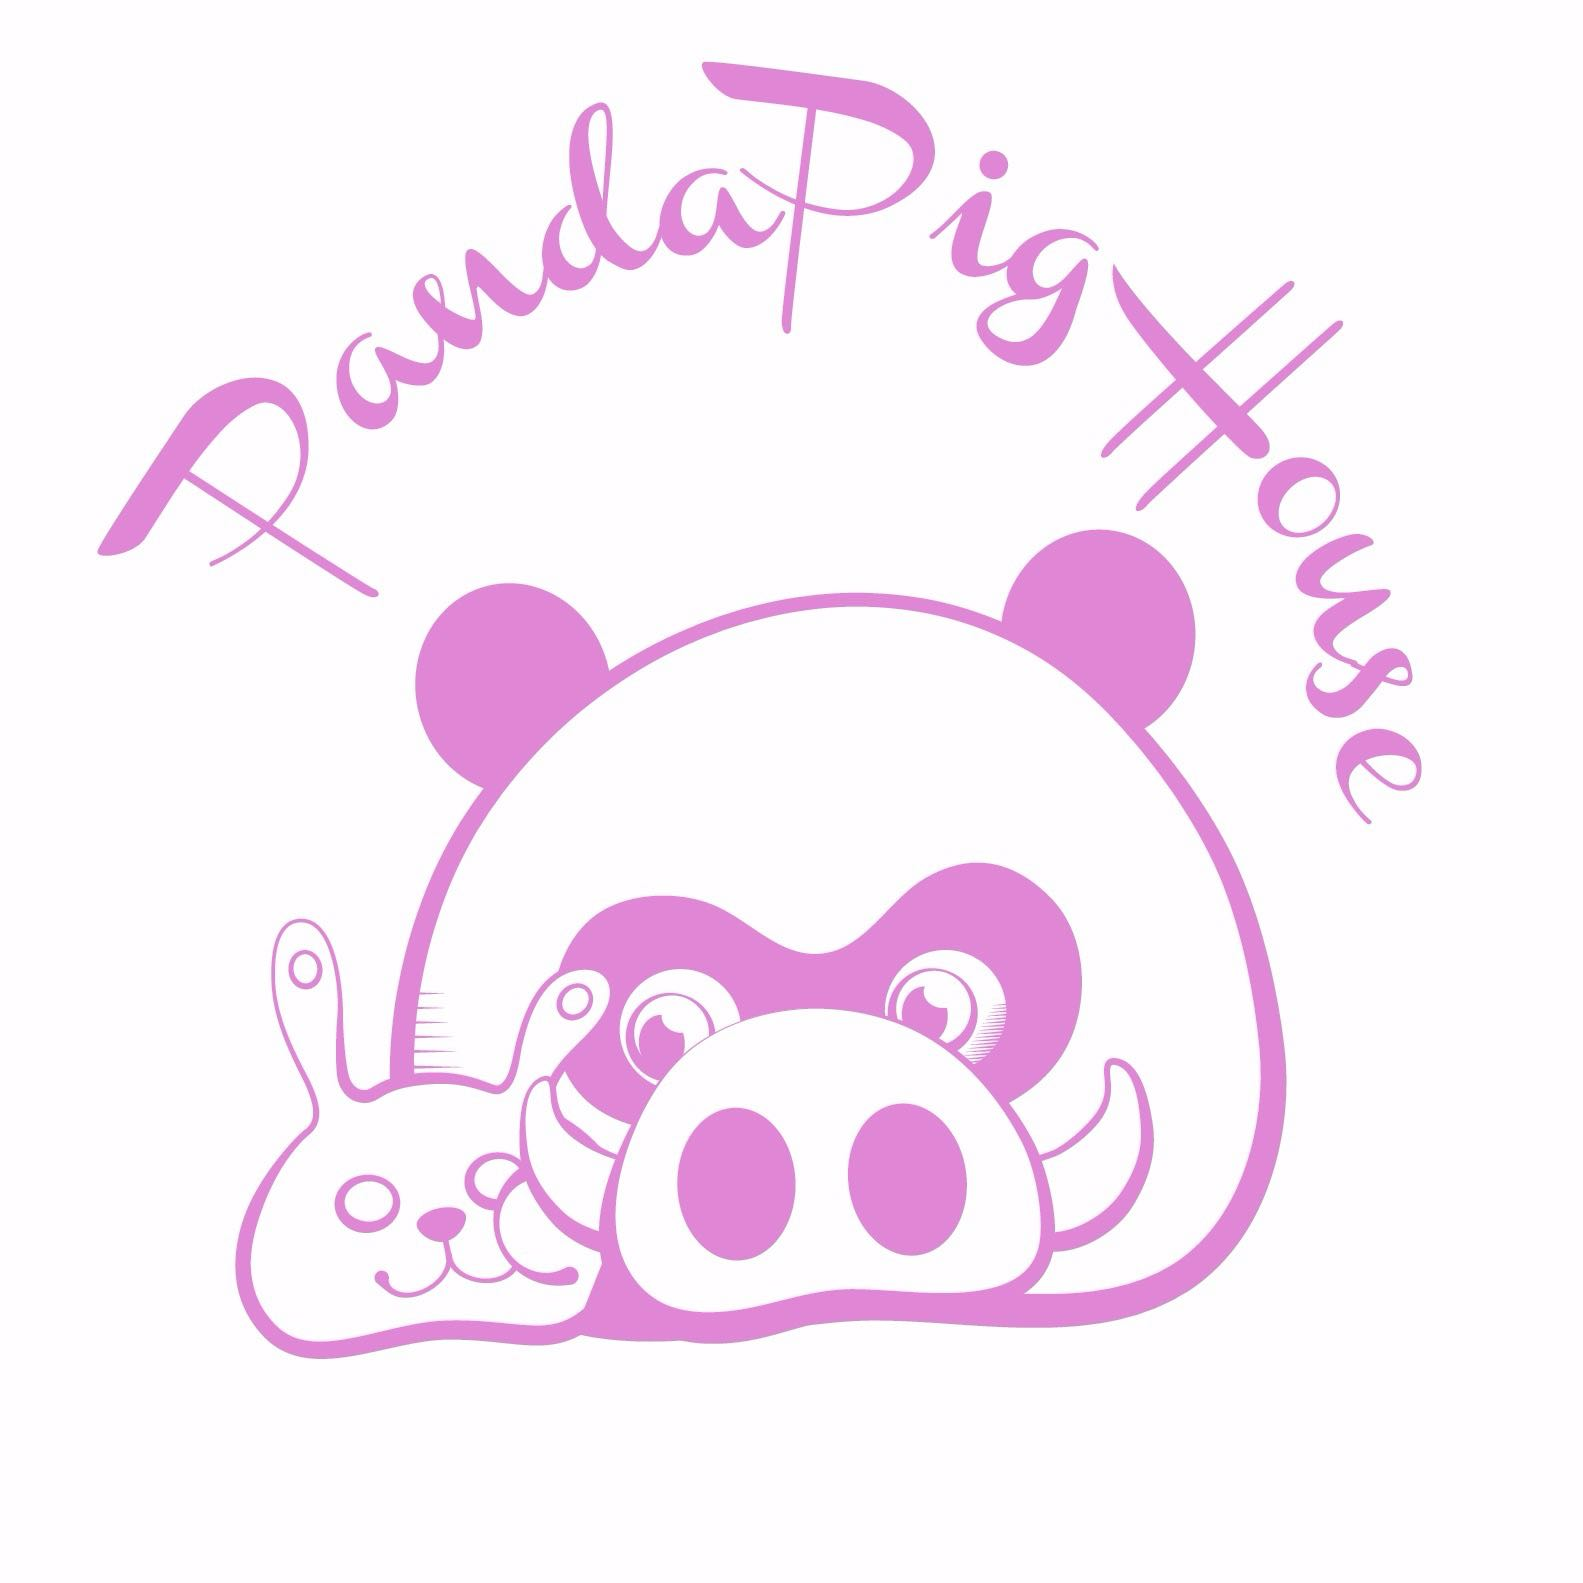 pandapighouse